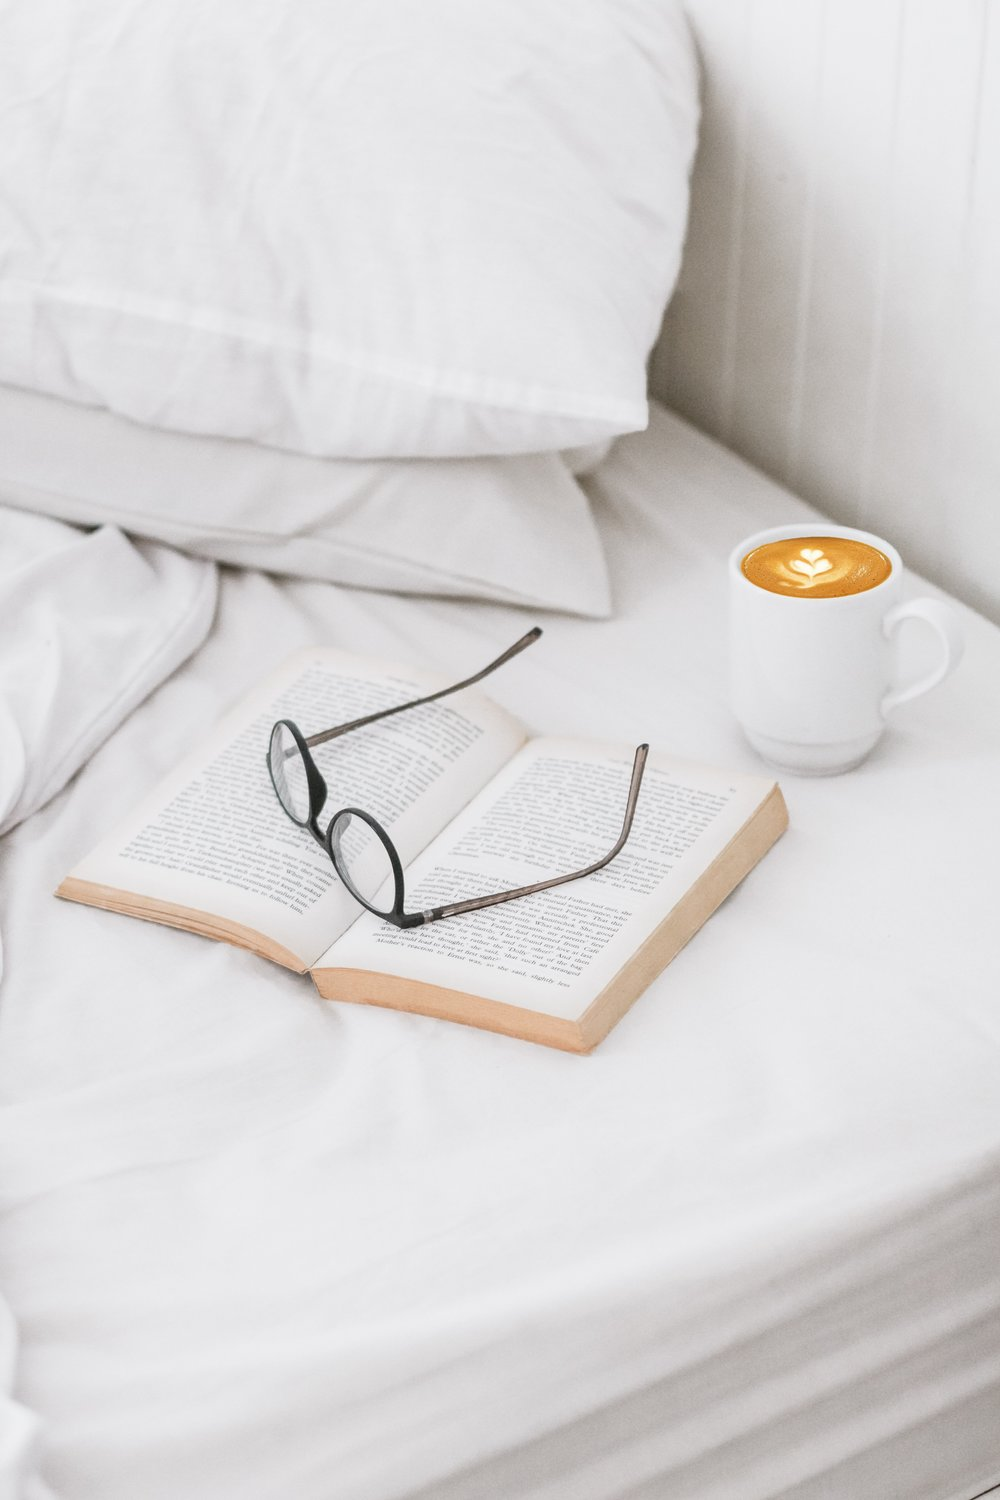 A bed with a coffee, book and pair on glasses